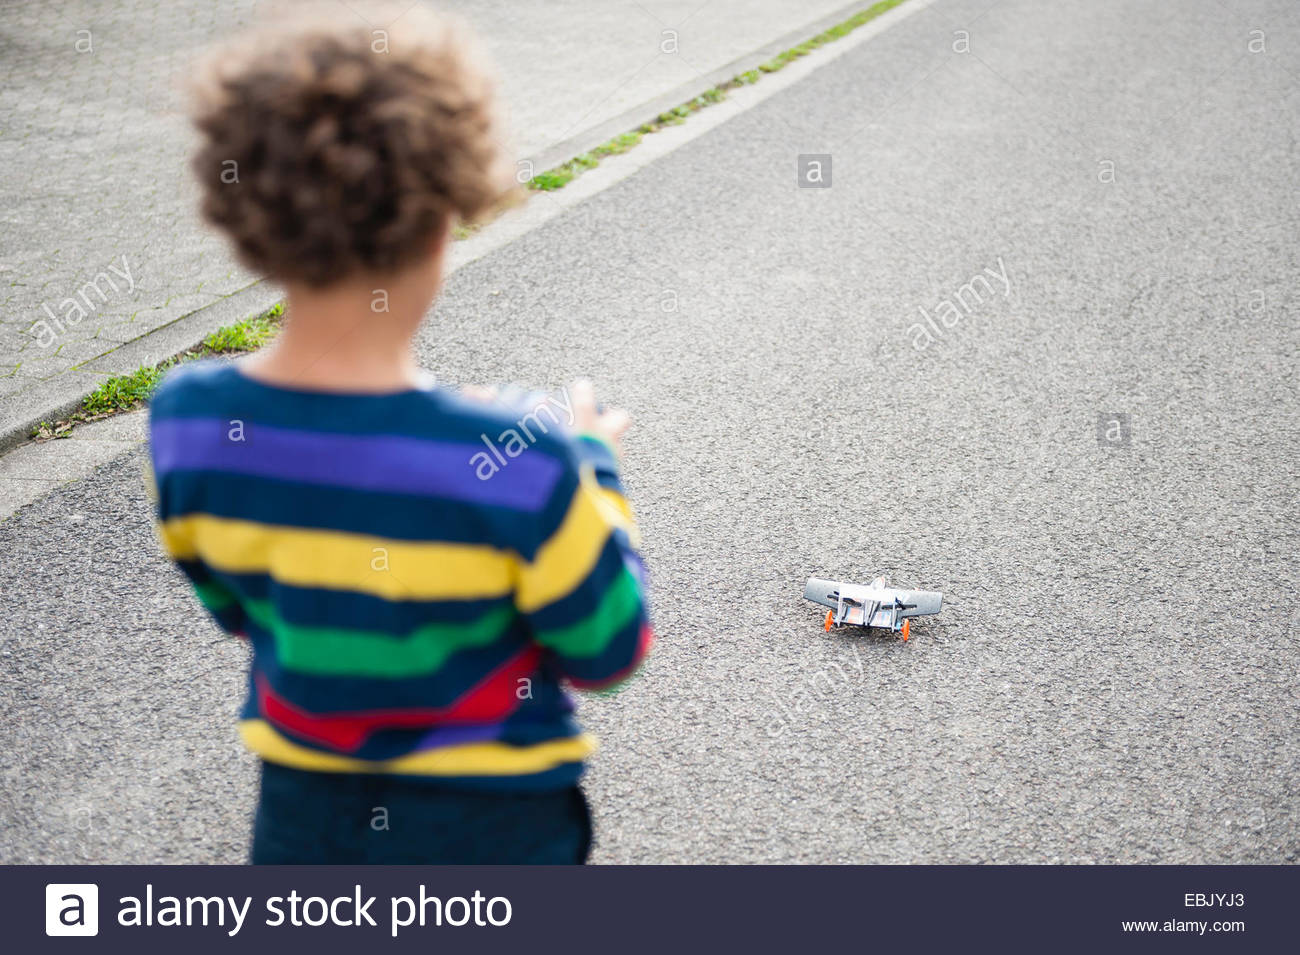 Rear view of boy playing on road with radio controlled airplane - Stock Image